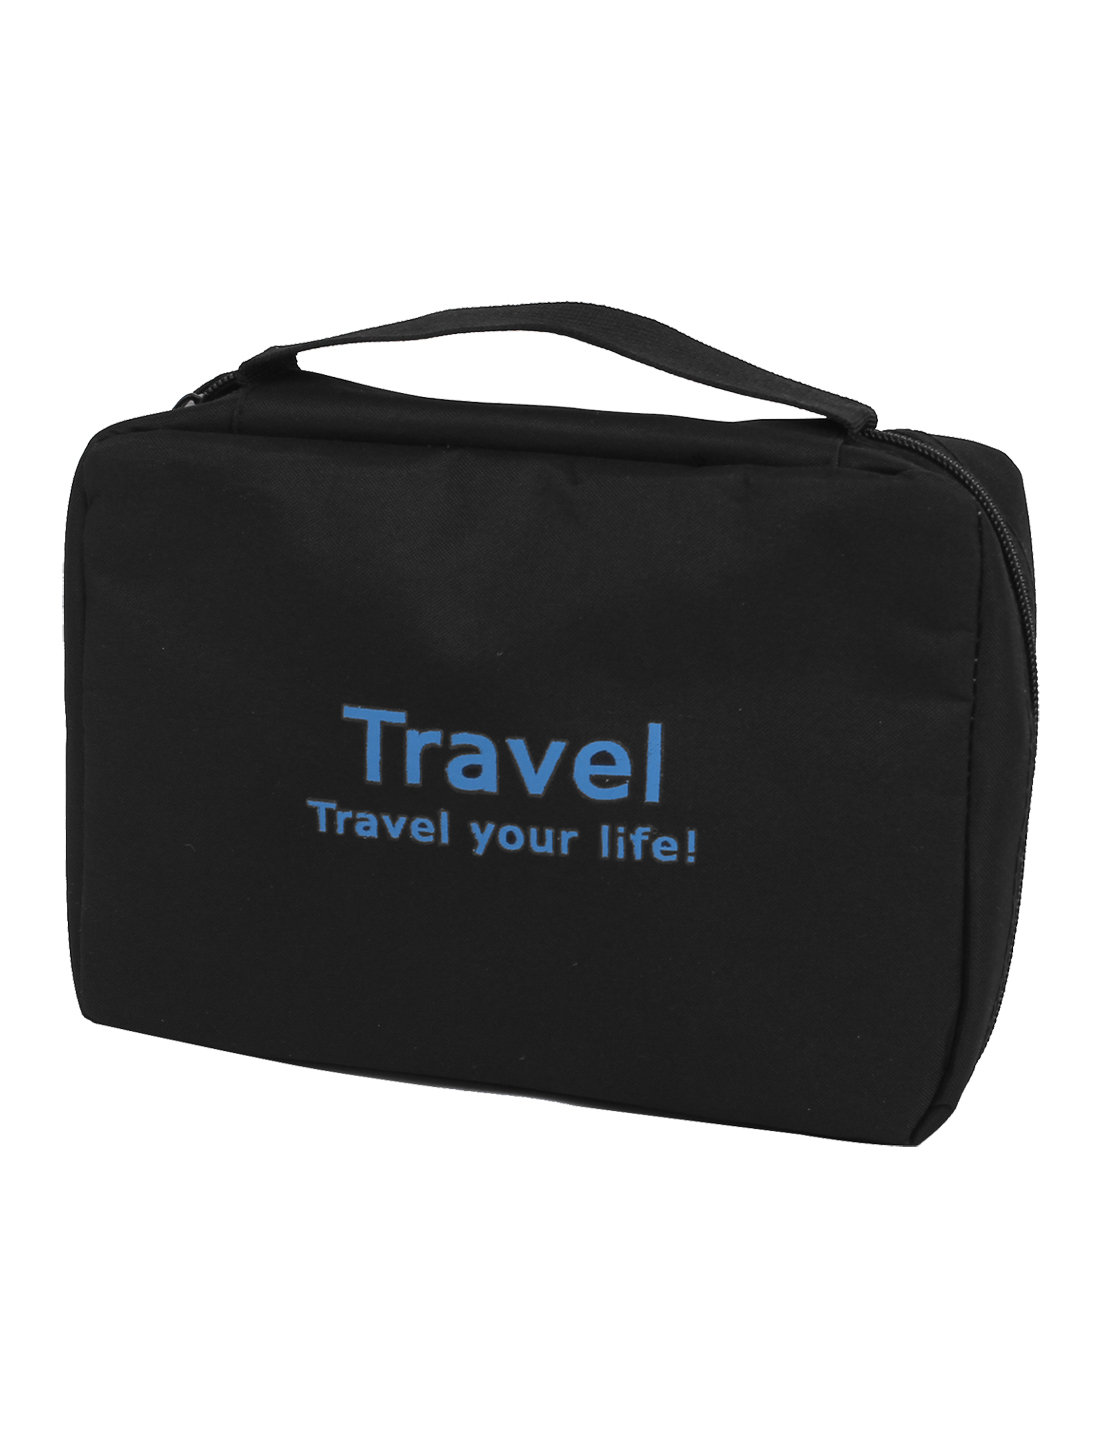 Business Trip Travel Toiletry Toiletries Cosmetic Beauty Hanging Wash Bag Black